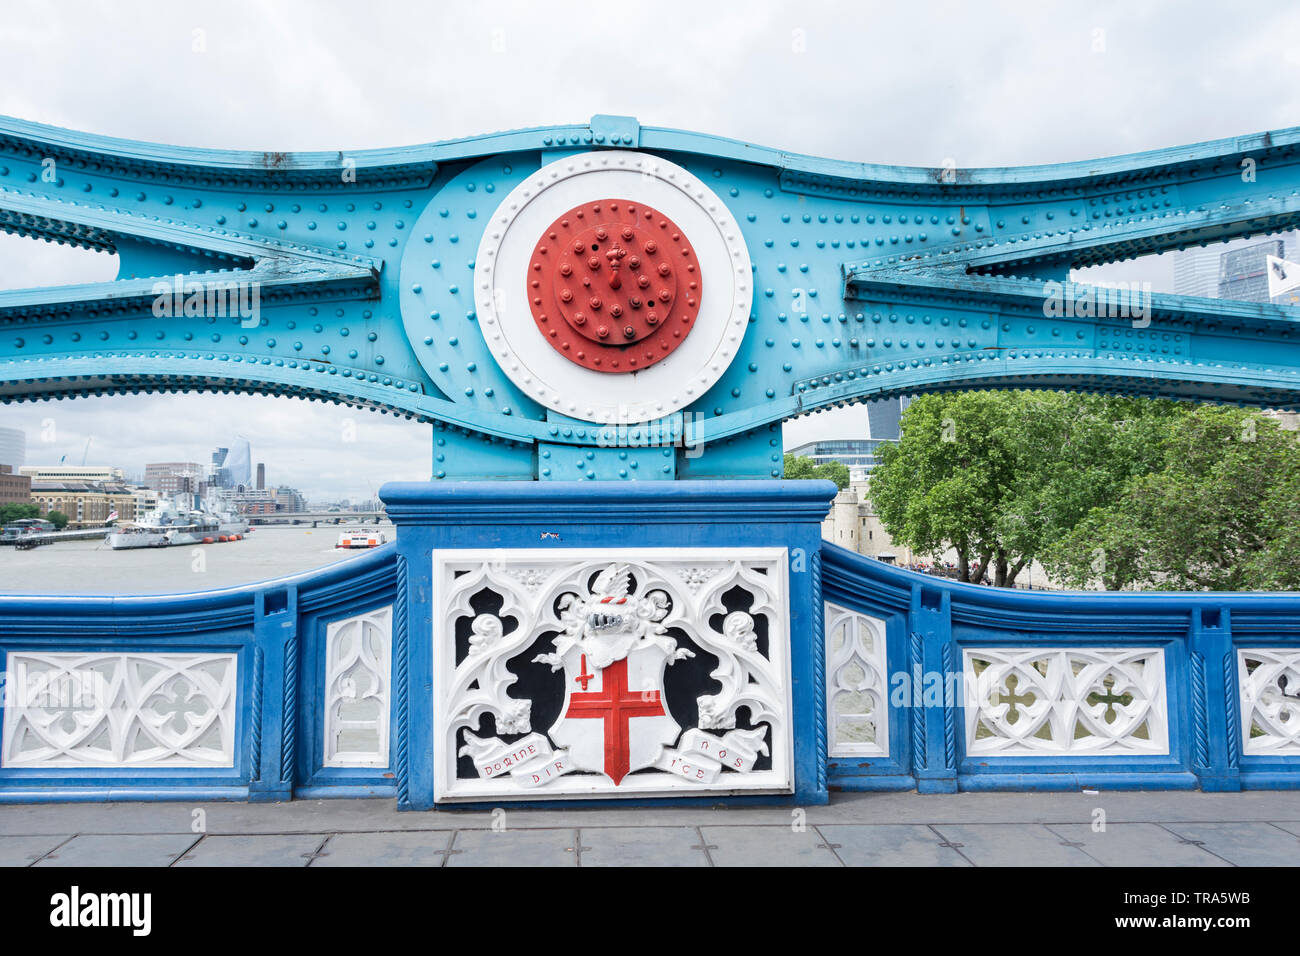 Close-up view of Wrought Iron and Rivet Detail on Tower Bridge, London, UK - Stock Image